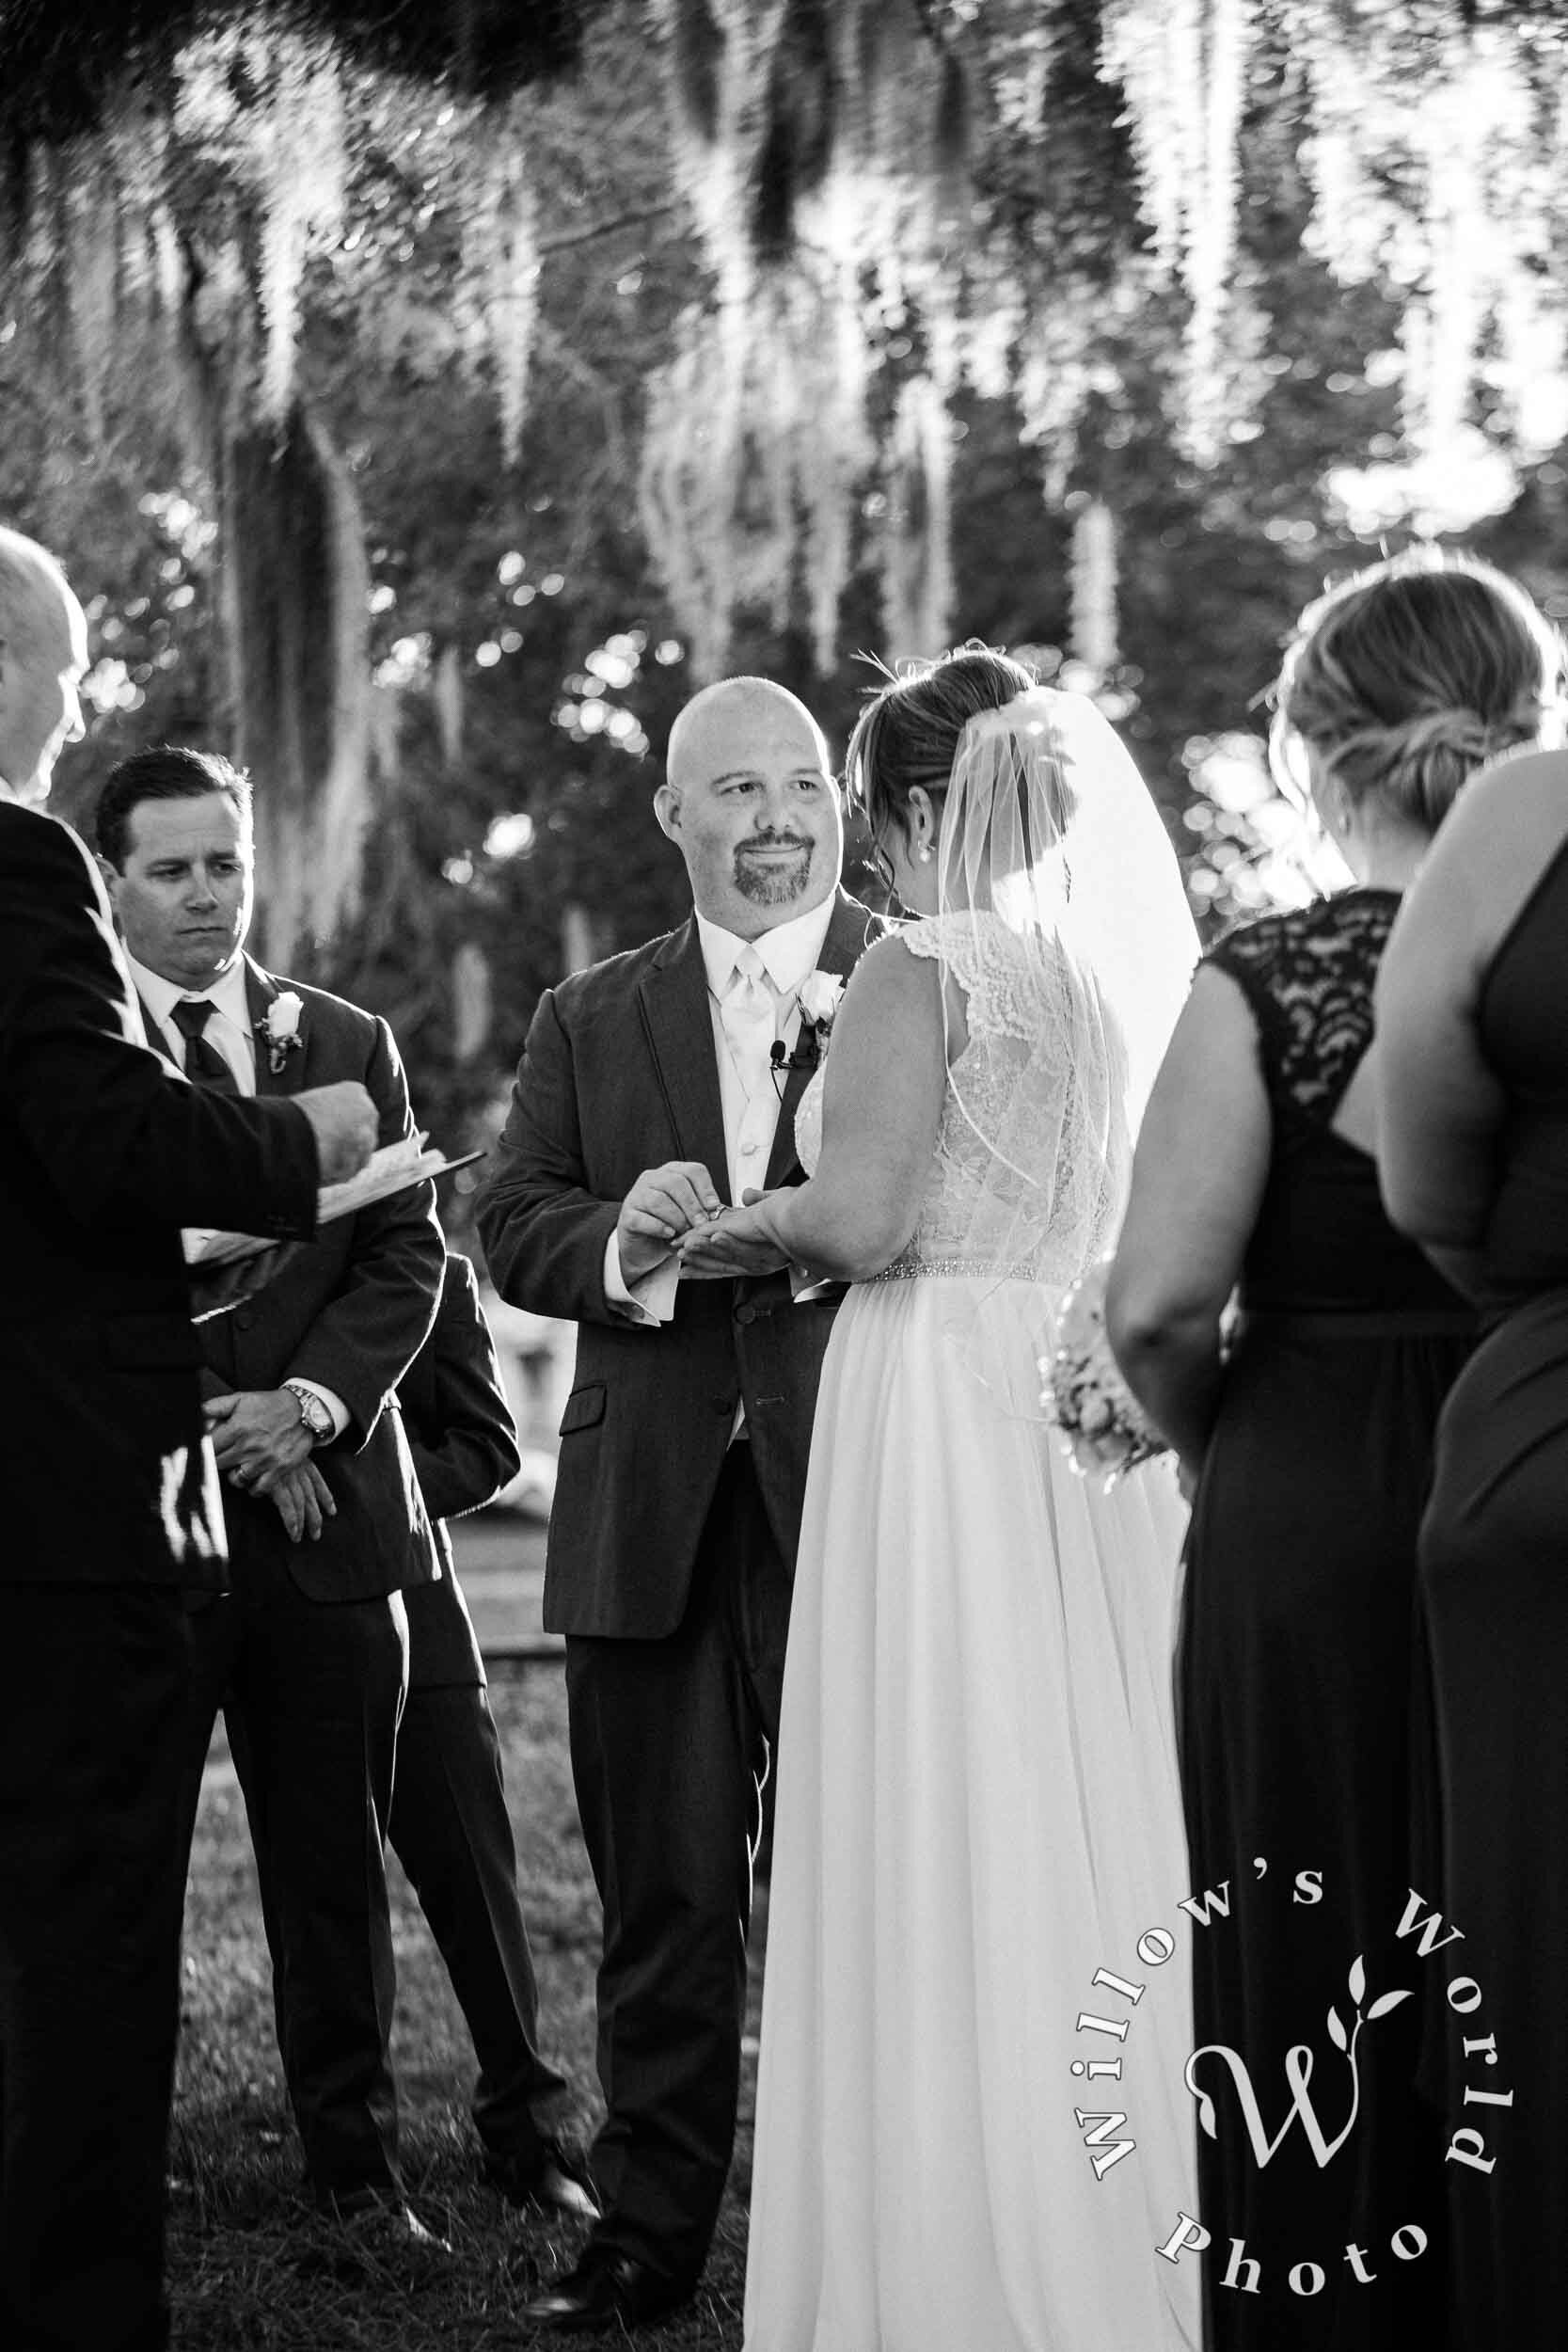 65-City-Park-Outdoor-Wedding-New-Orleans-Willows-World-Photo.jpg